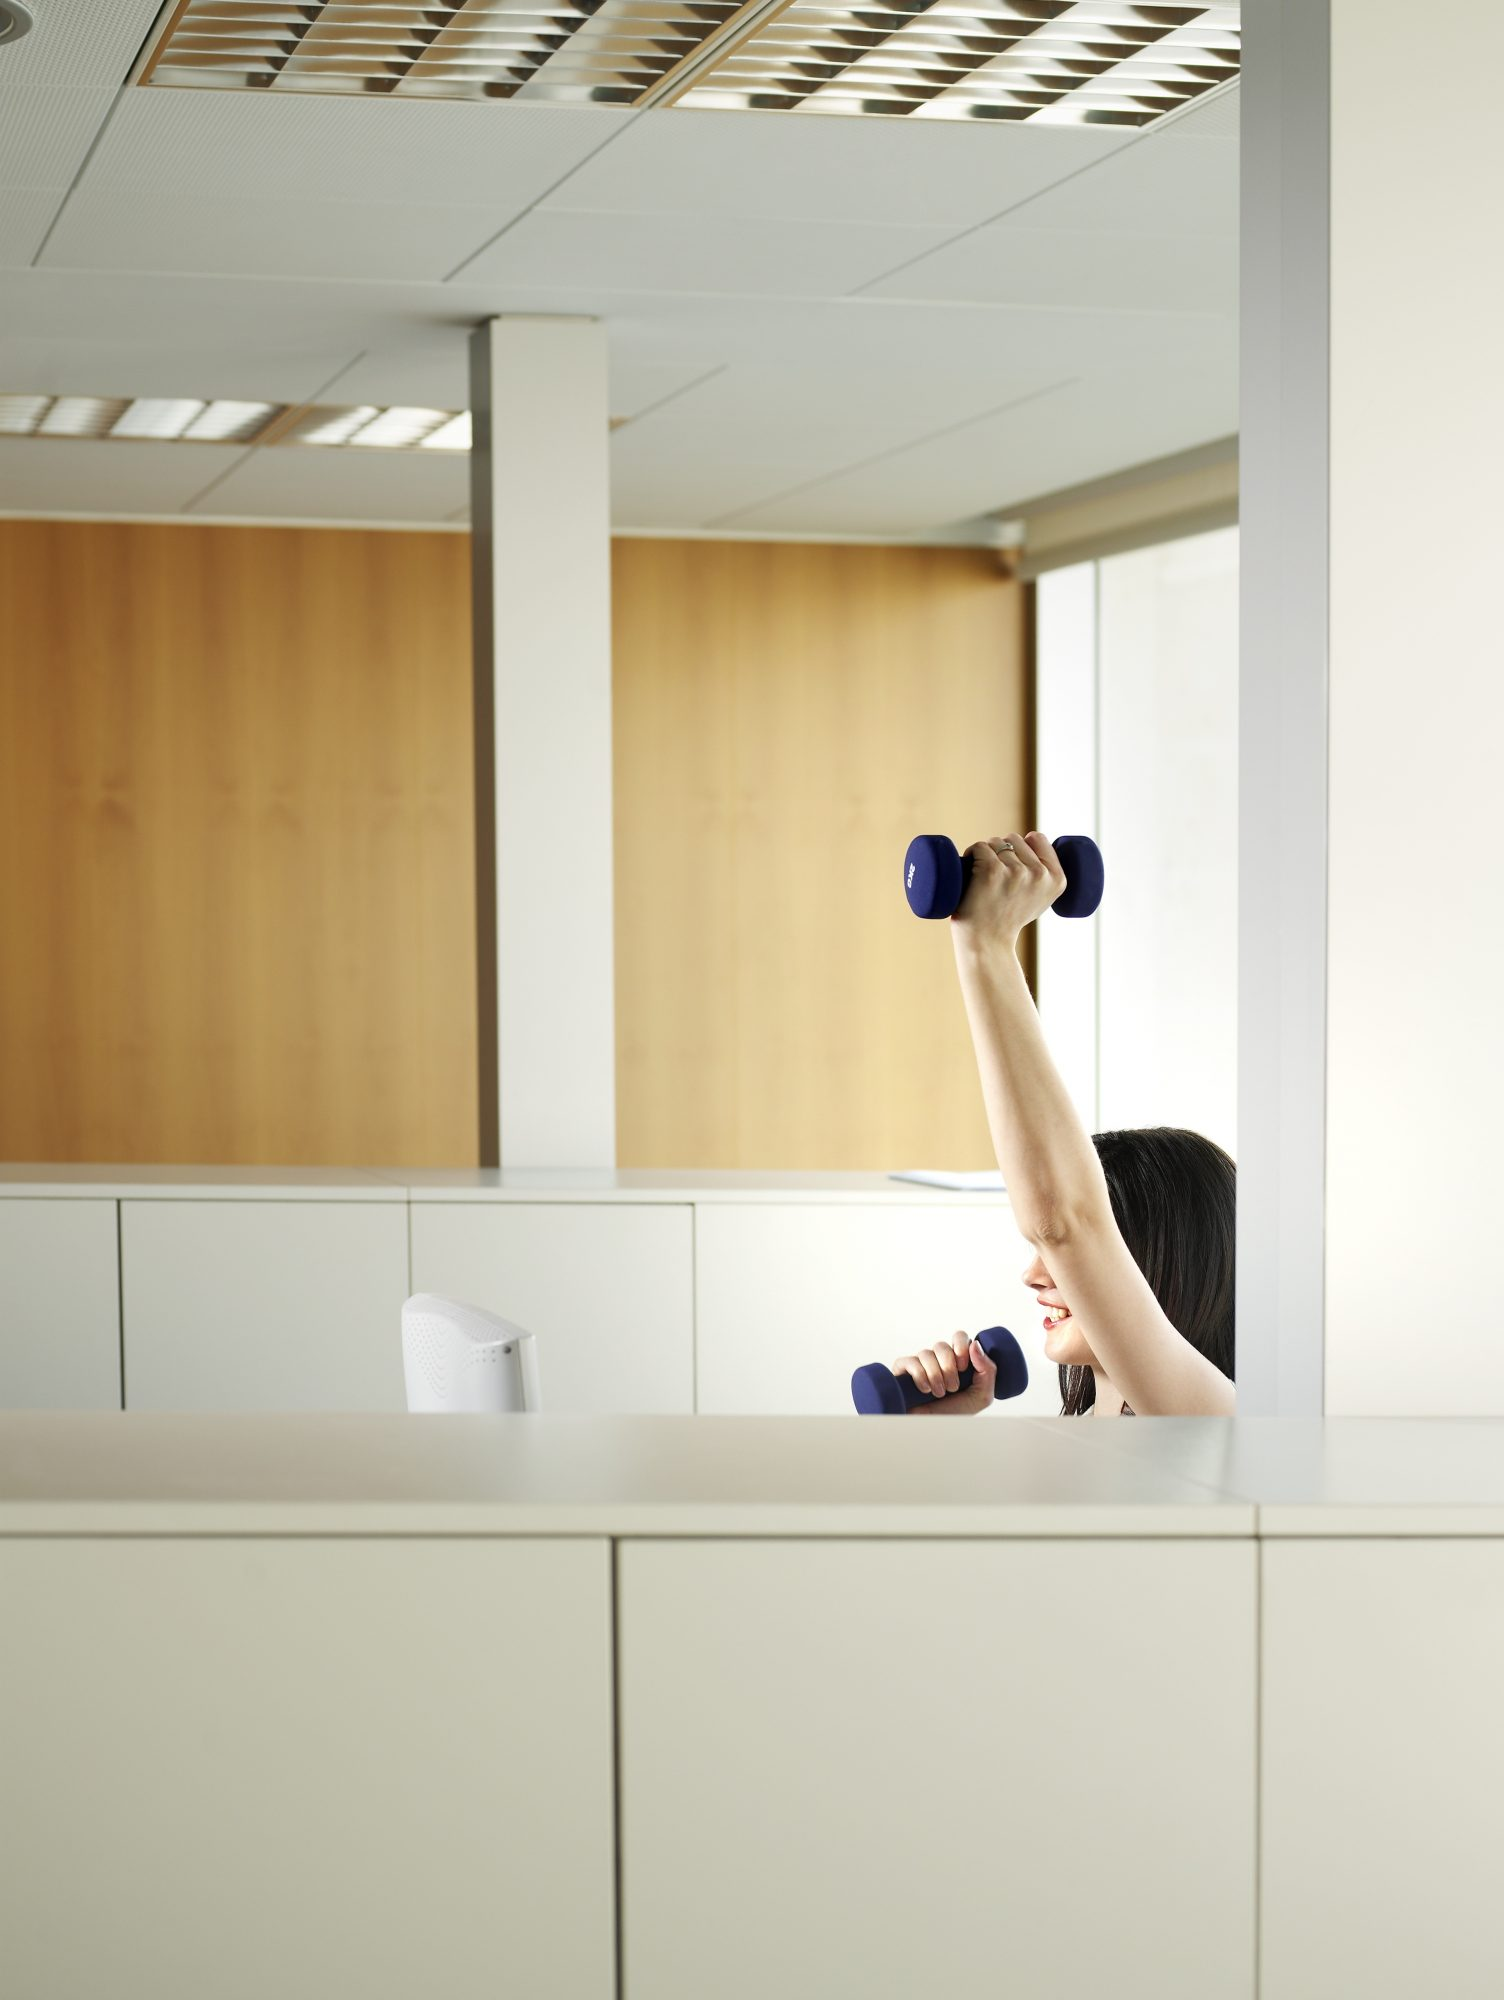 worksite-health-promotions-office-weights